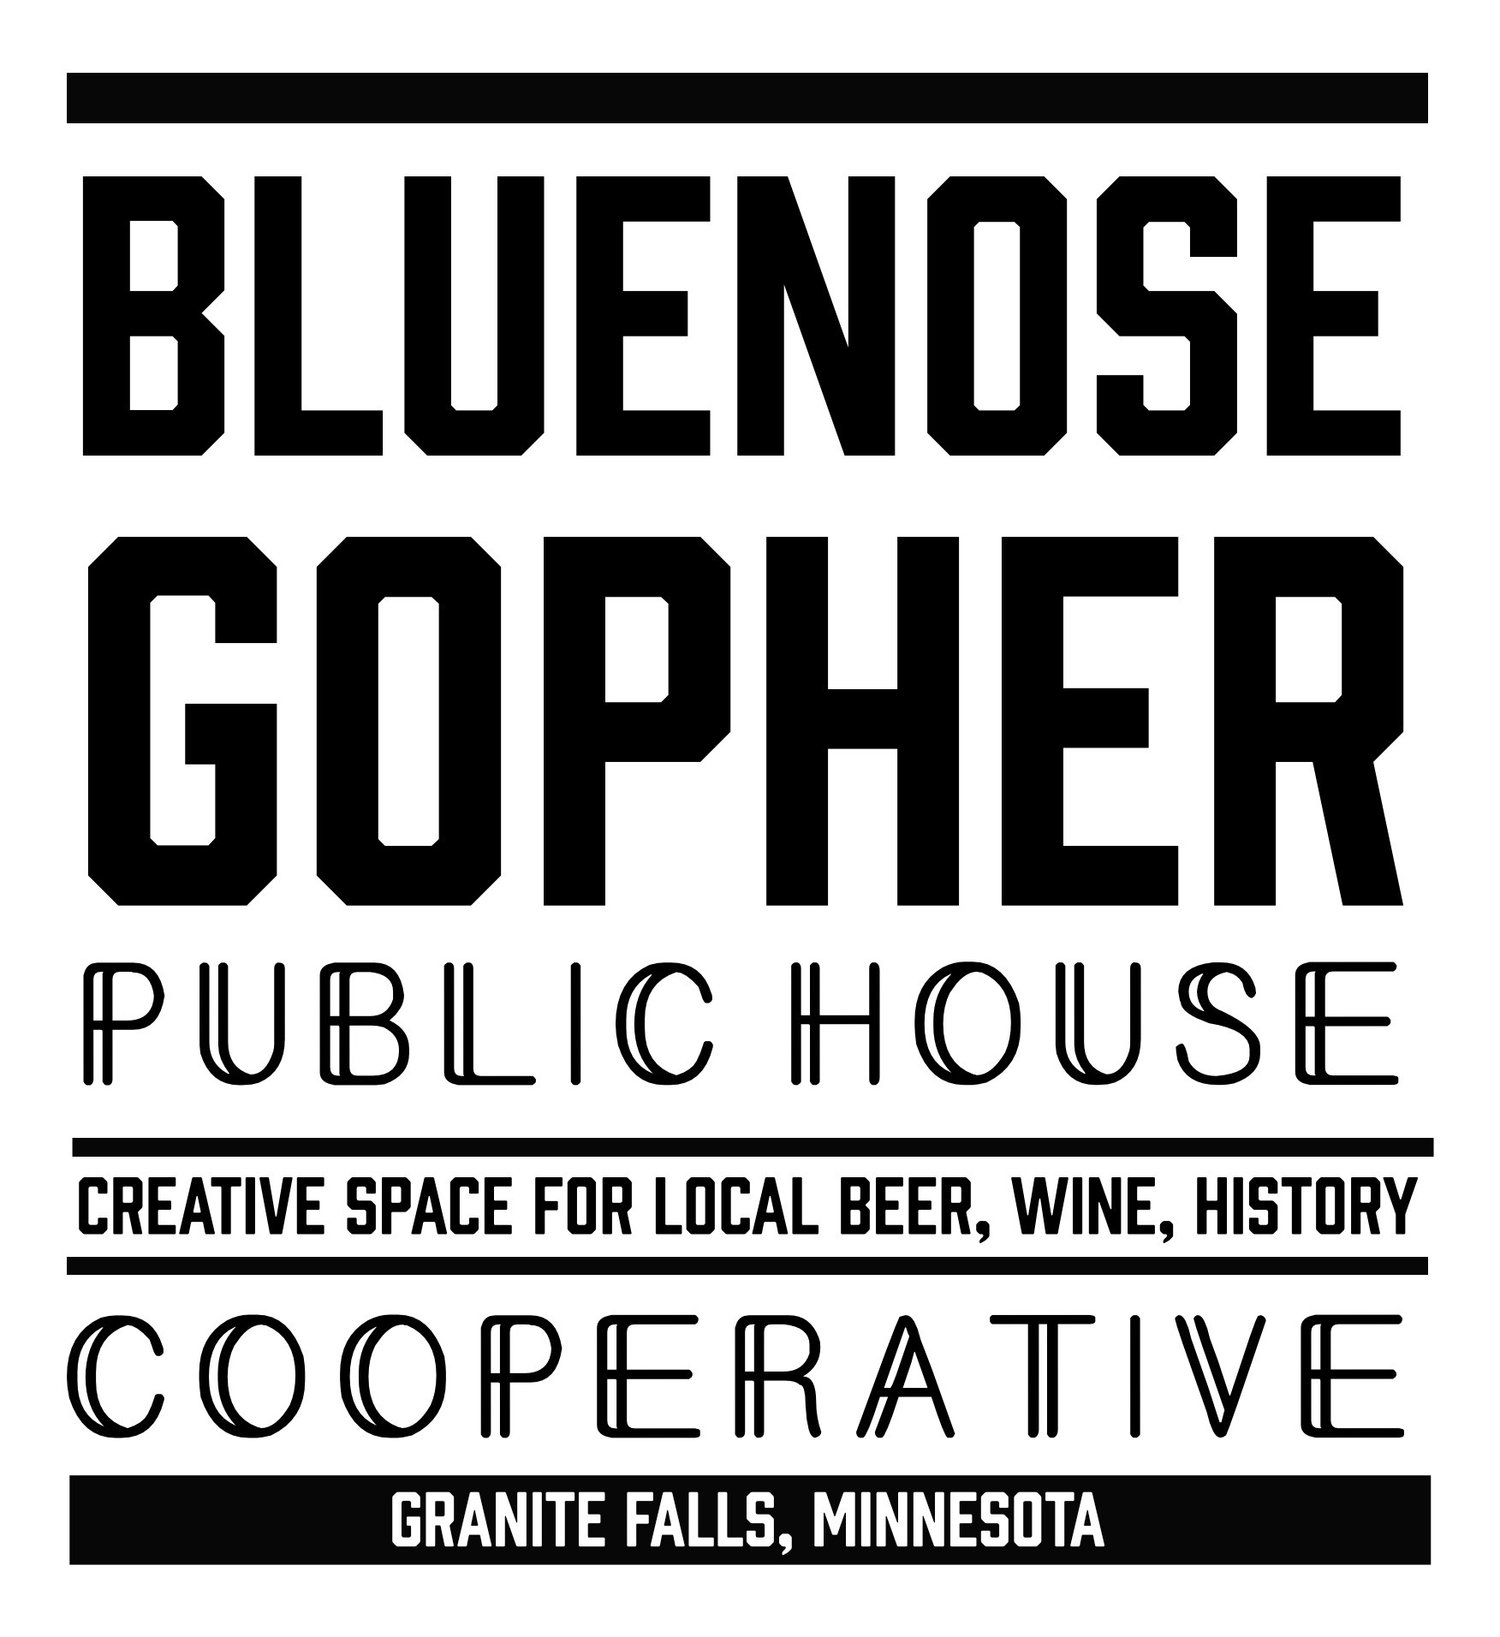 Bluenose Gopher Public House